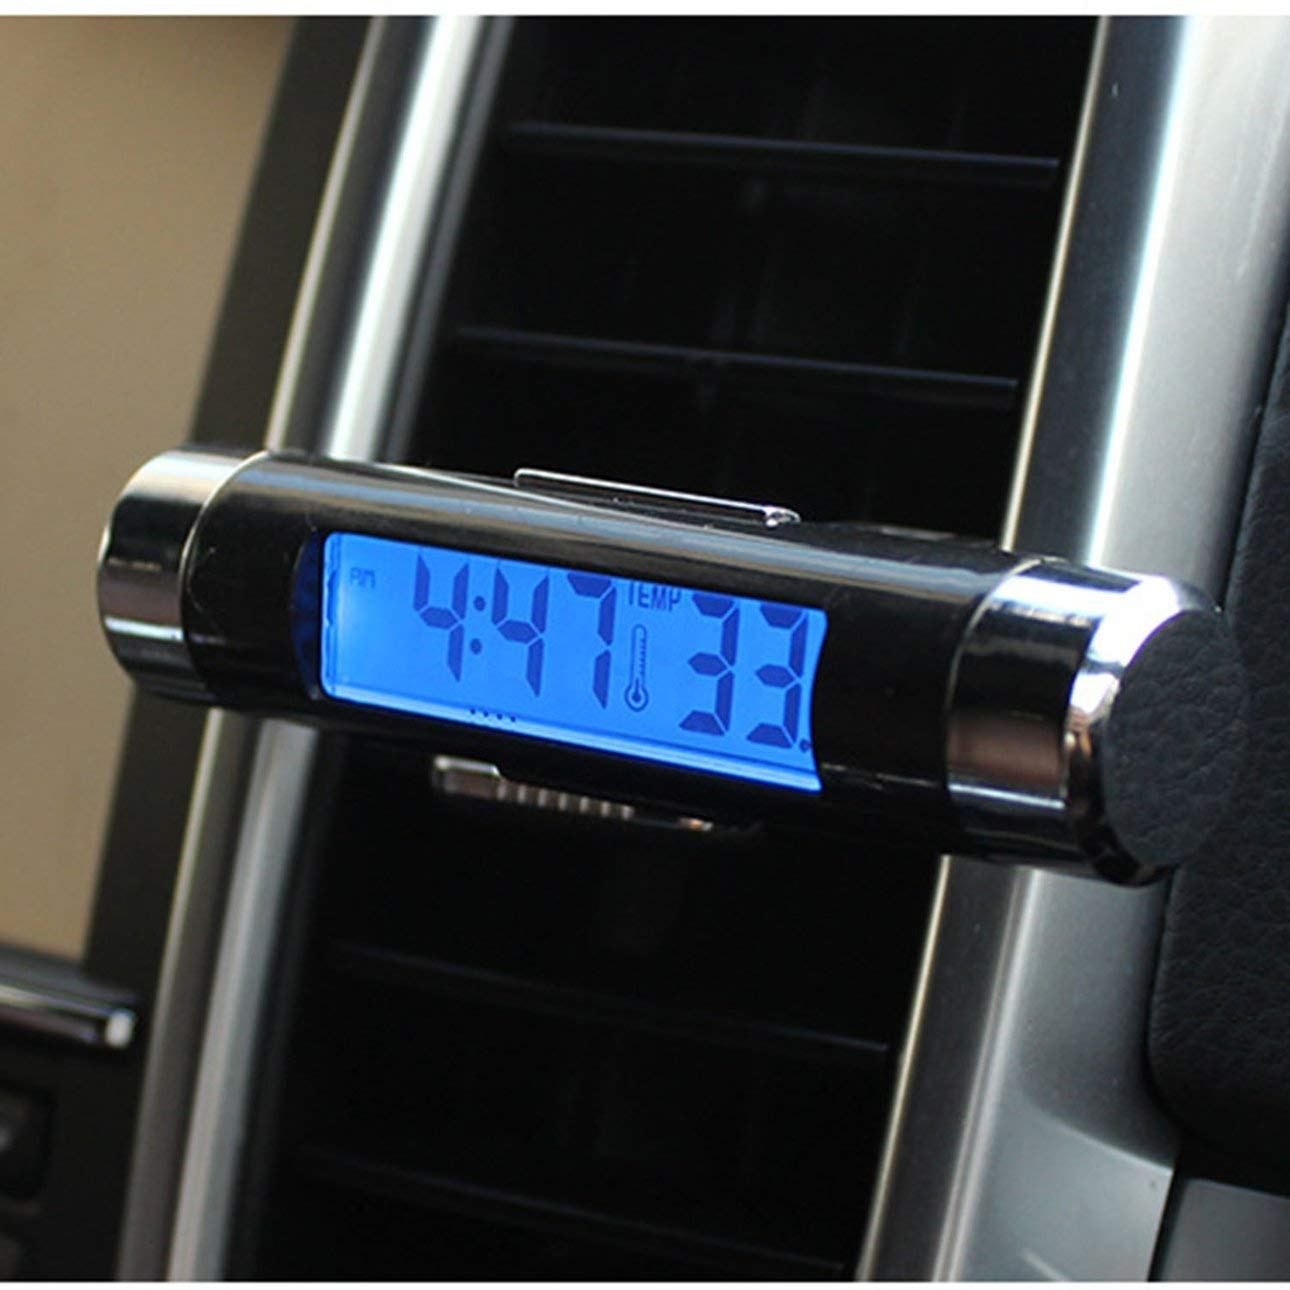 Black 2 in 1 Car Vehicle LCD Digital Display Automotive Thermometer Clock Portable Car Air Vent Outlet Clip-on LED Backlight